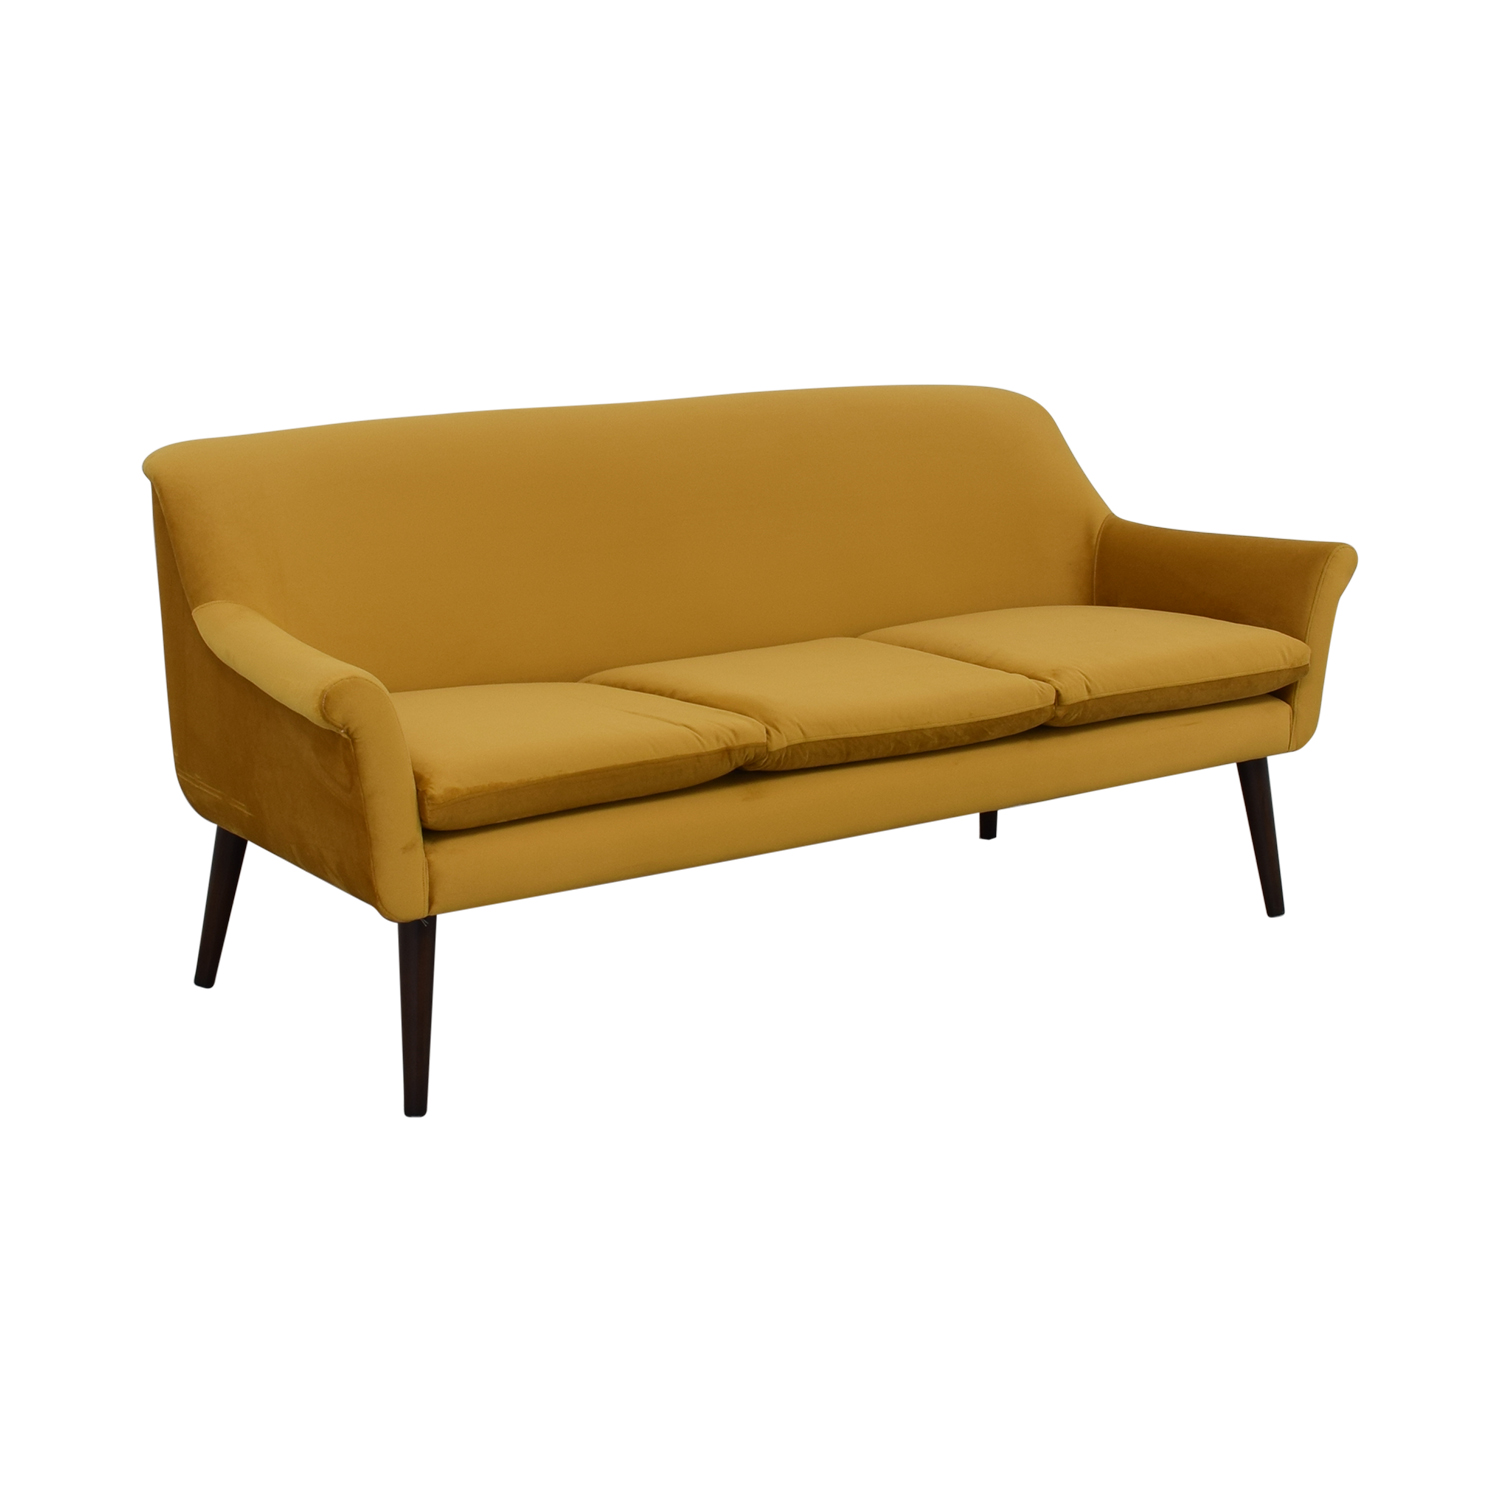 Urban Outfitters Urban Outfitters Yellow Velvet Sofa yellow